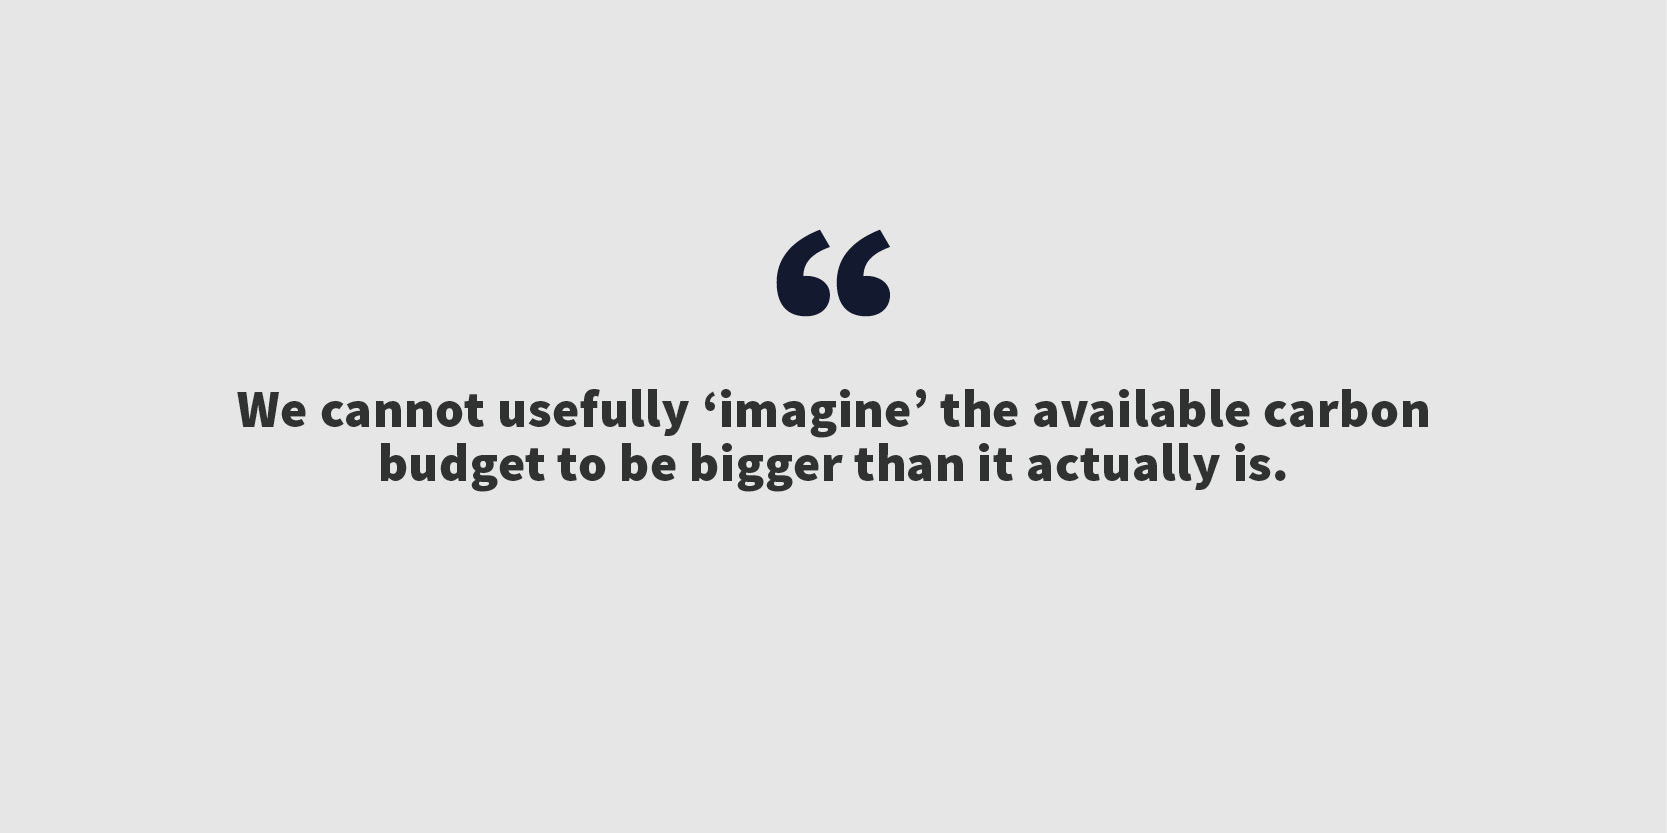 We cannot usefully 'imagine' the available carbon budget to be bigger than it actually is.